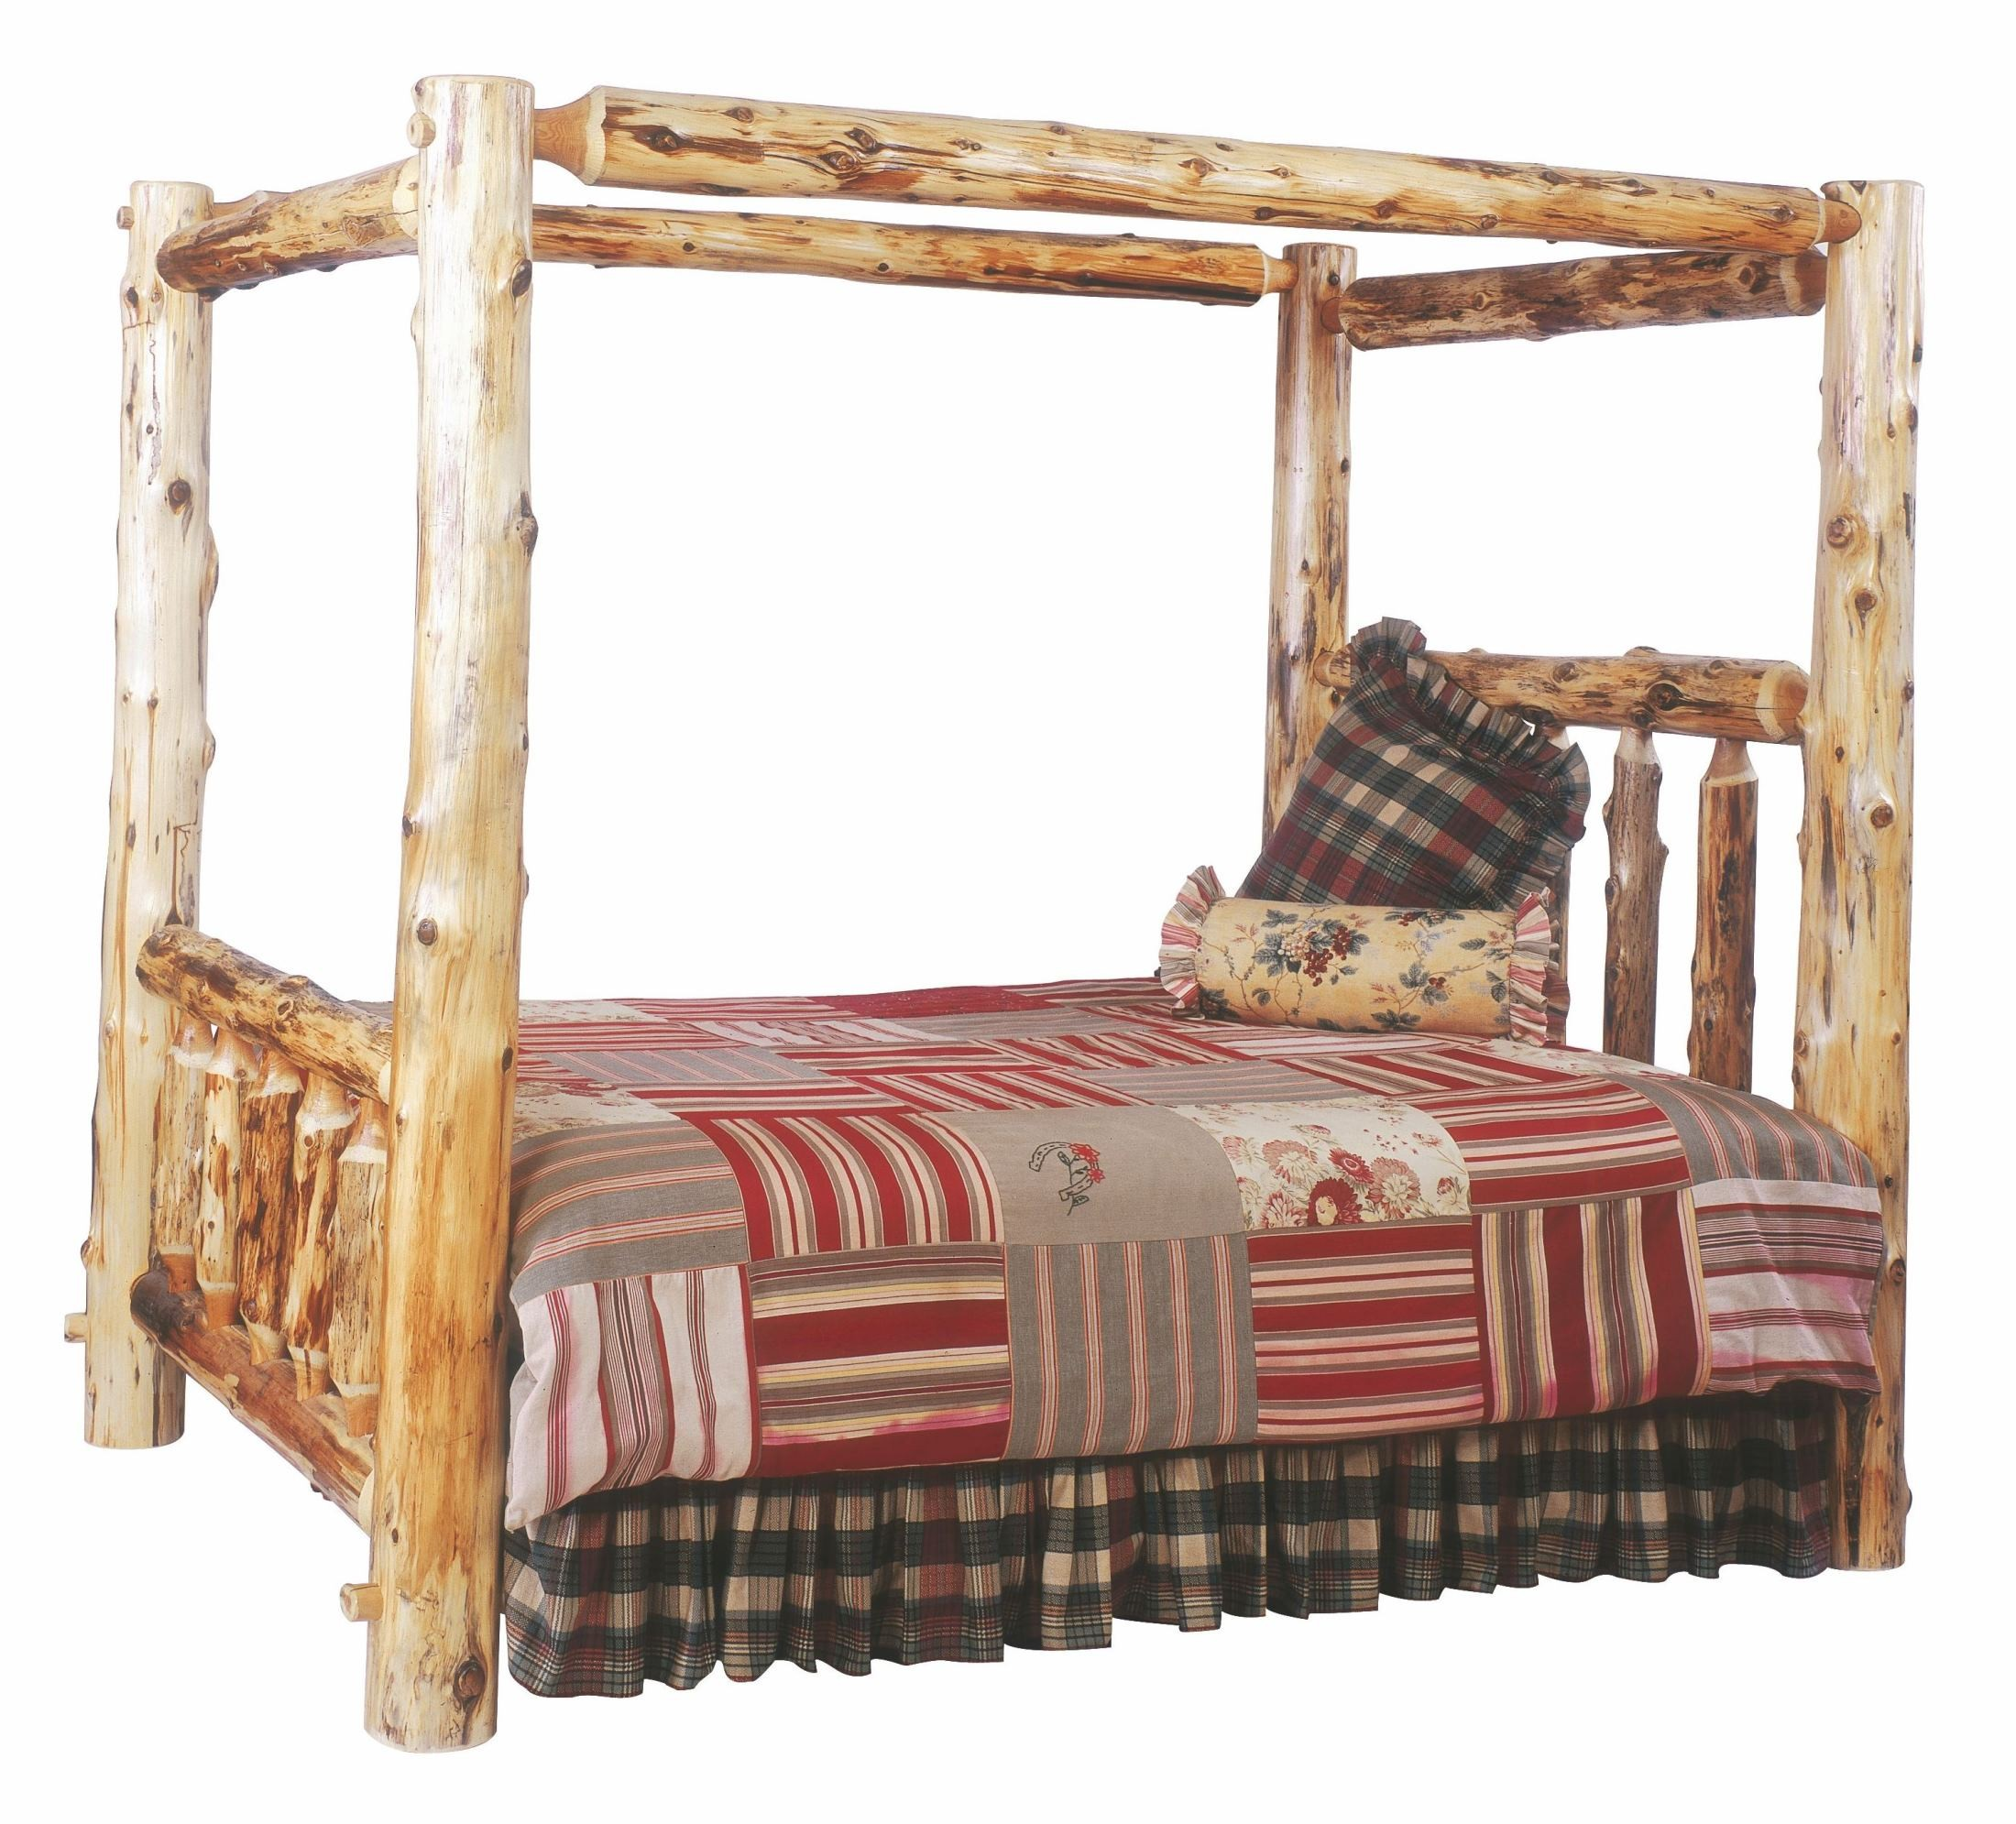 traditional cedar youth canopy log bedroom set from magnolia home furniture bedroom trend home design and decor